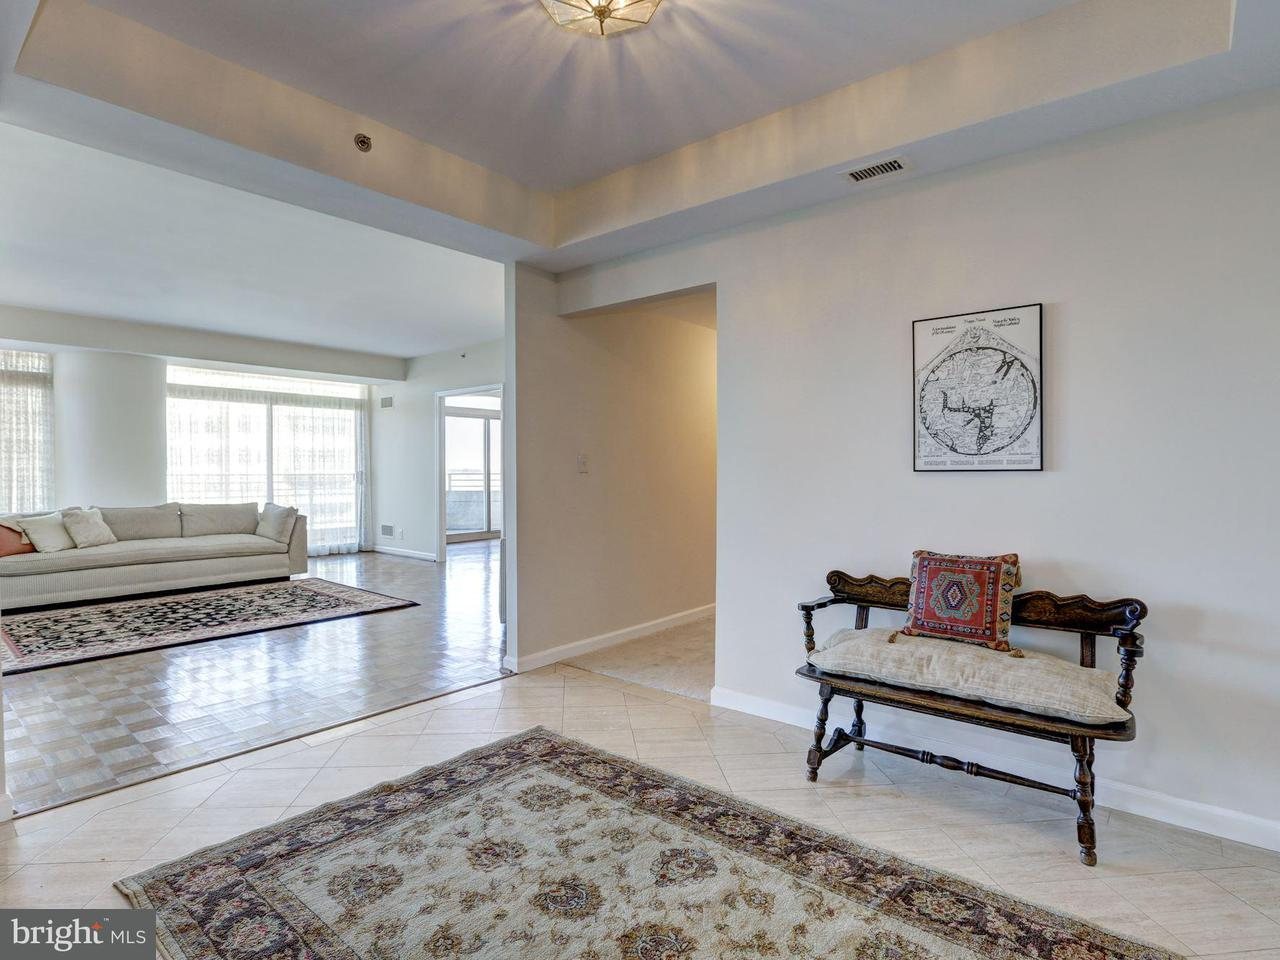 Townhouse for Sale at 5610 WISCONSIN AVE #1609 5610 WISCONSIN AVE #1609 Chevy Chase, Maryland 20815 United States